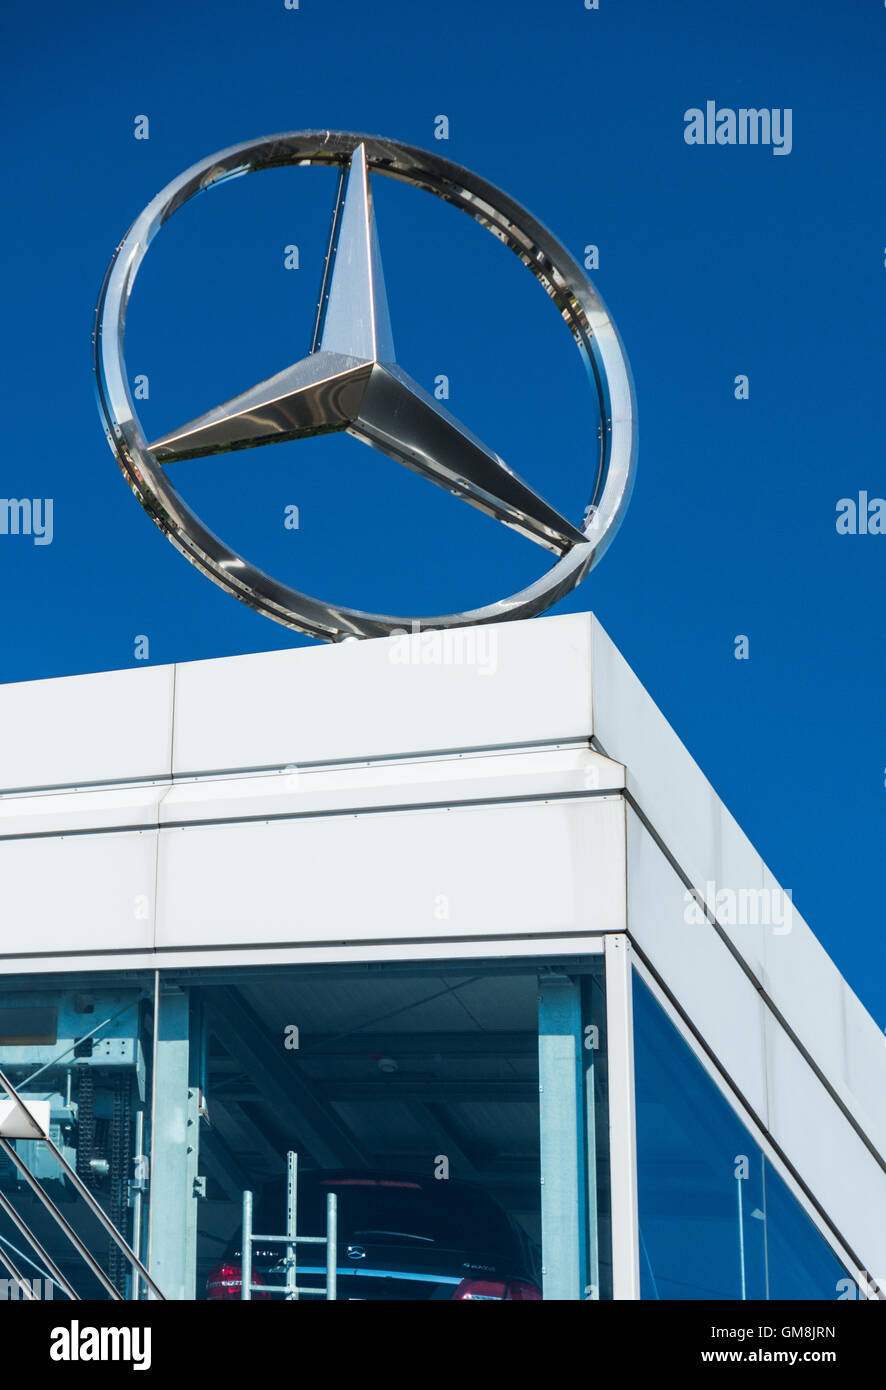 The Mercedes Benz logo on top of a showroom in Brentford, west London, UK Stock Photo